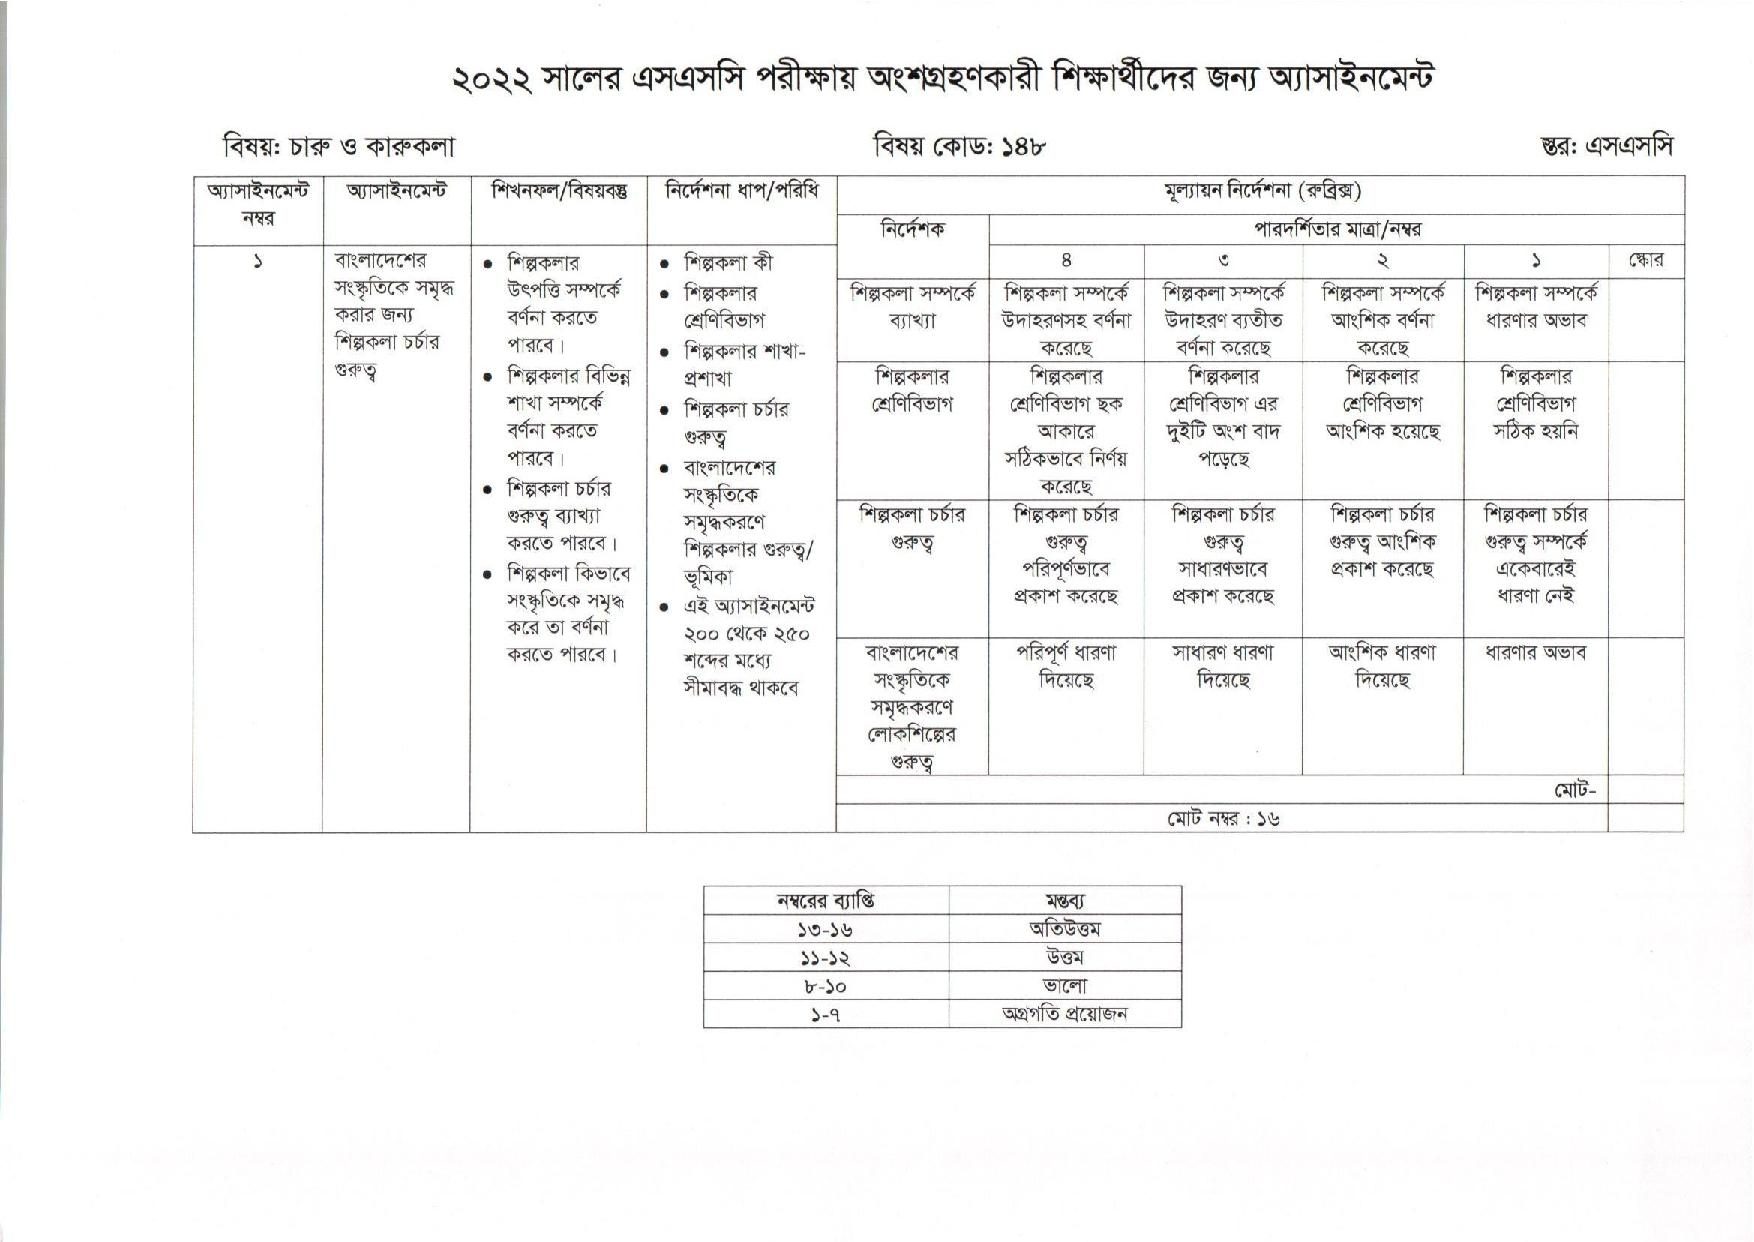 SSC Assignment 2022 All Subject 7th Week